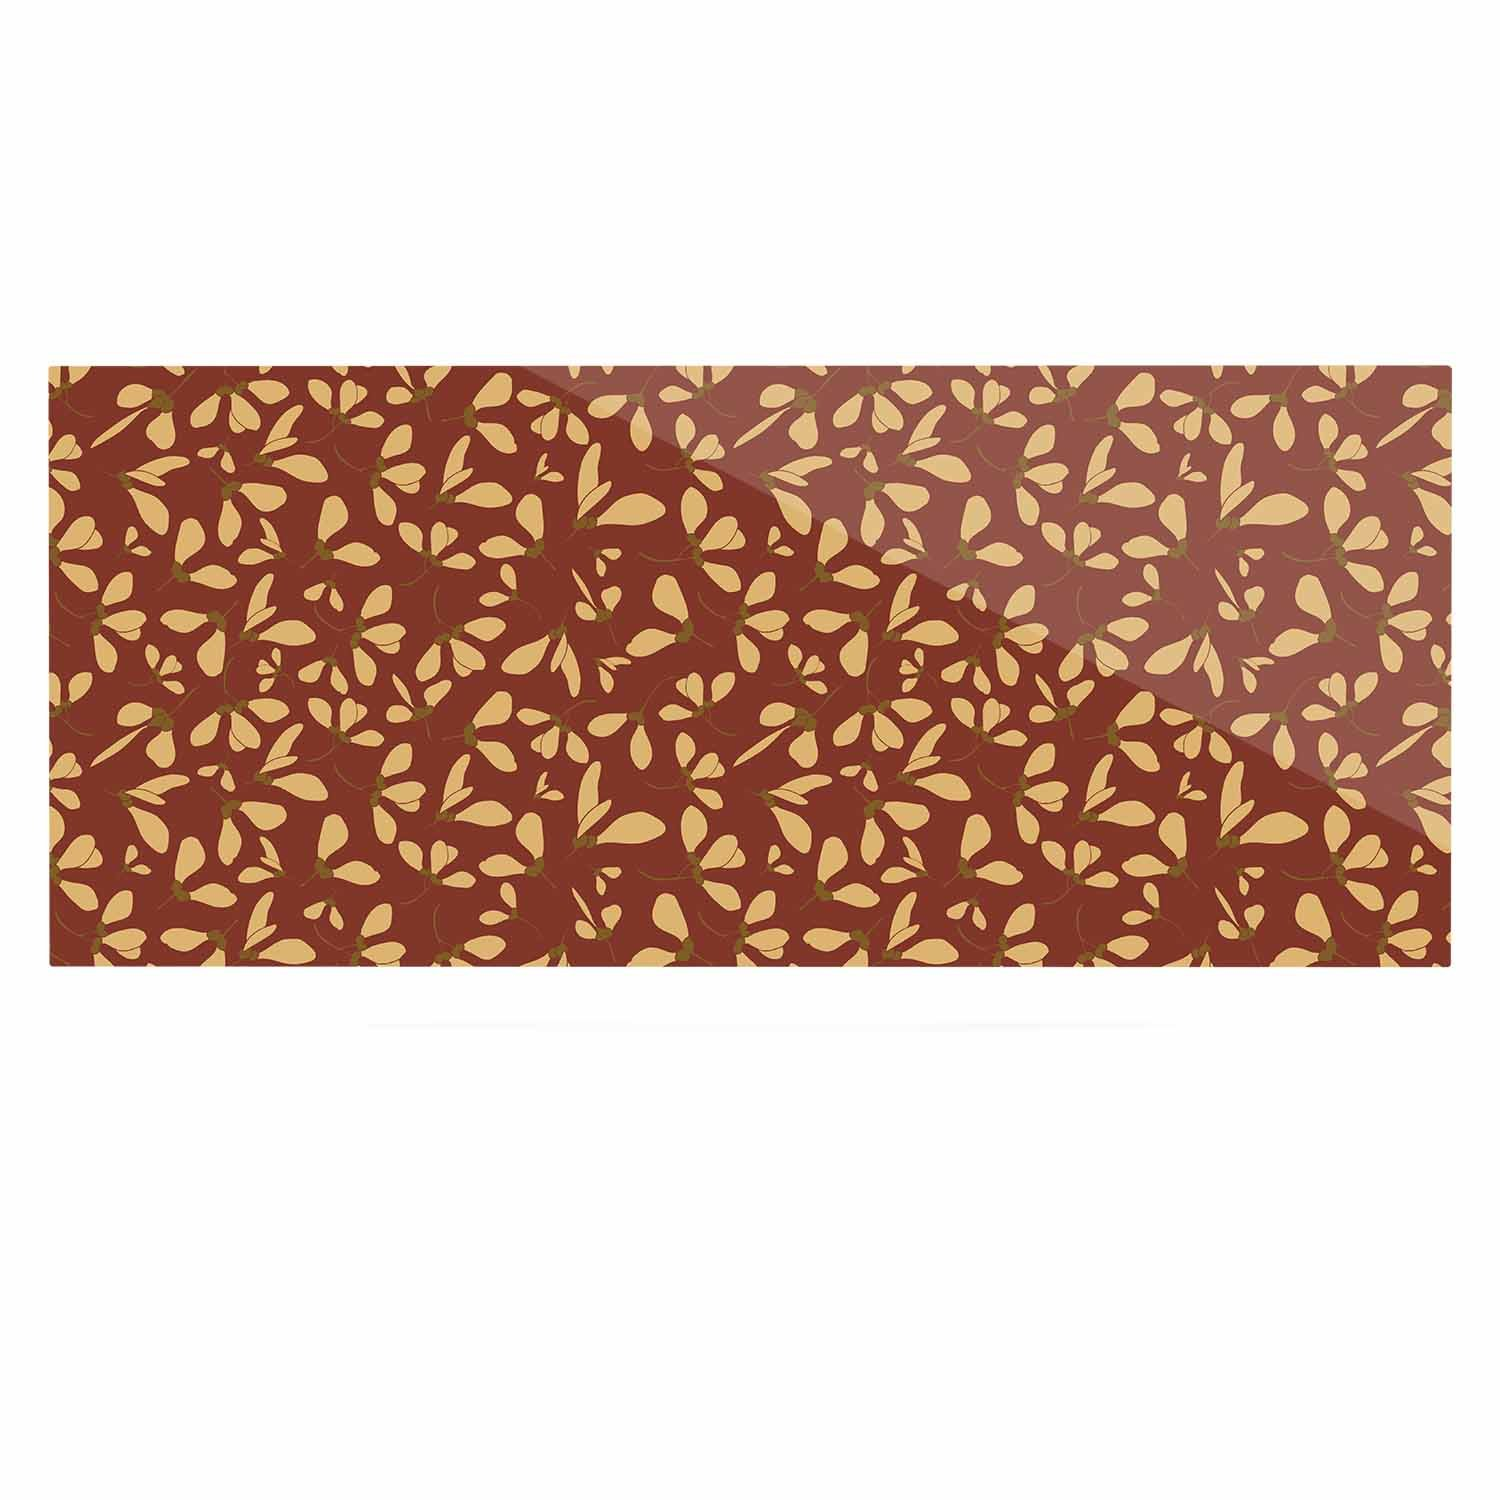 Kess InHouse Mayacoa Studio Under The Golden Hour Gold Floral Luxe Rectangle Panel 24 x 36